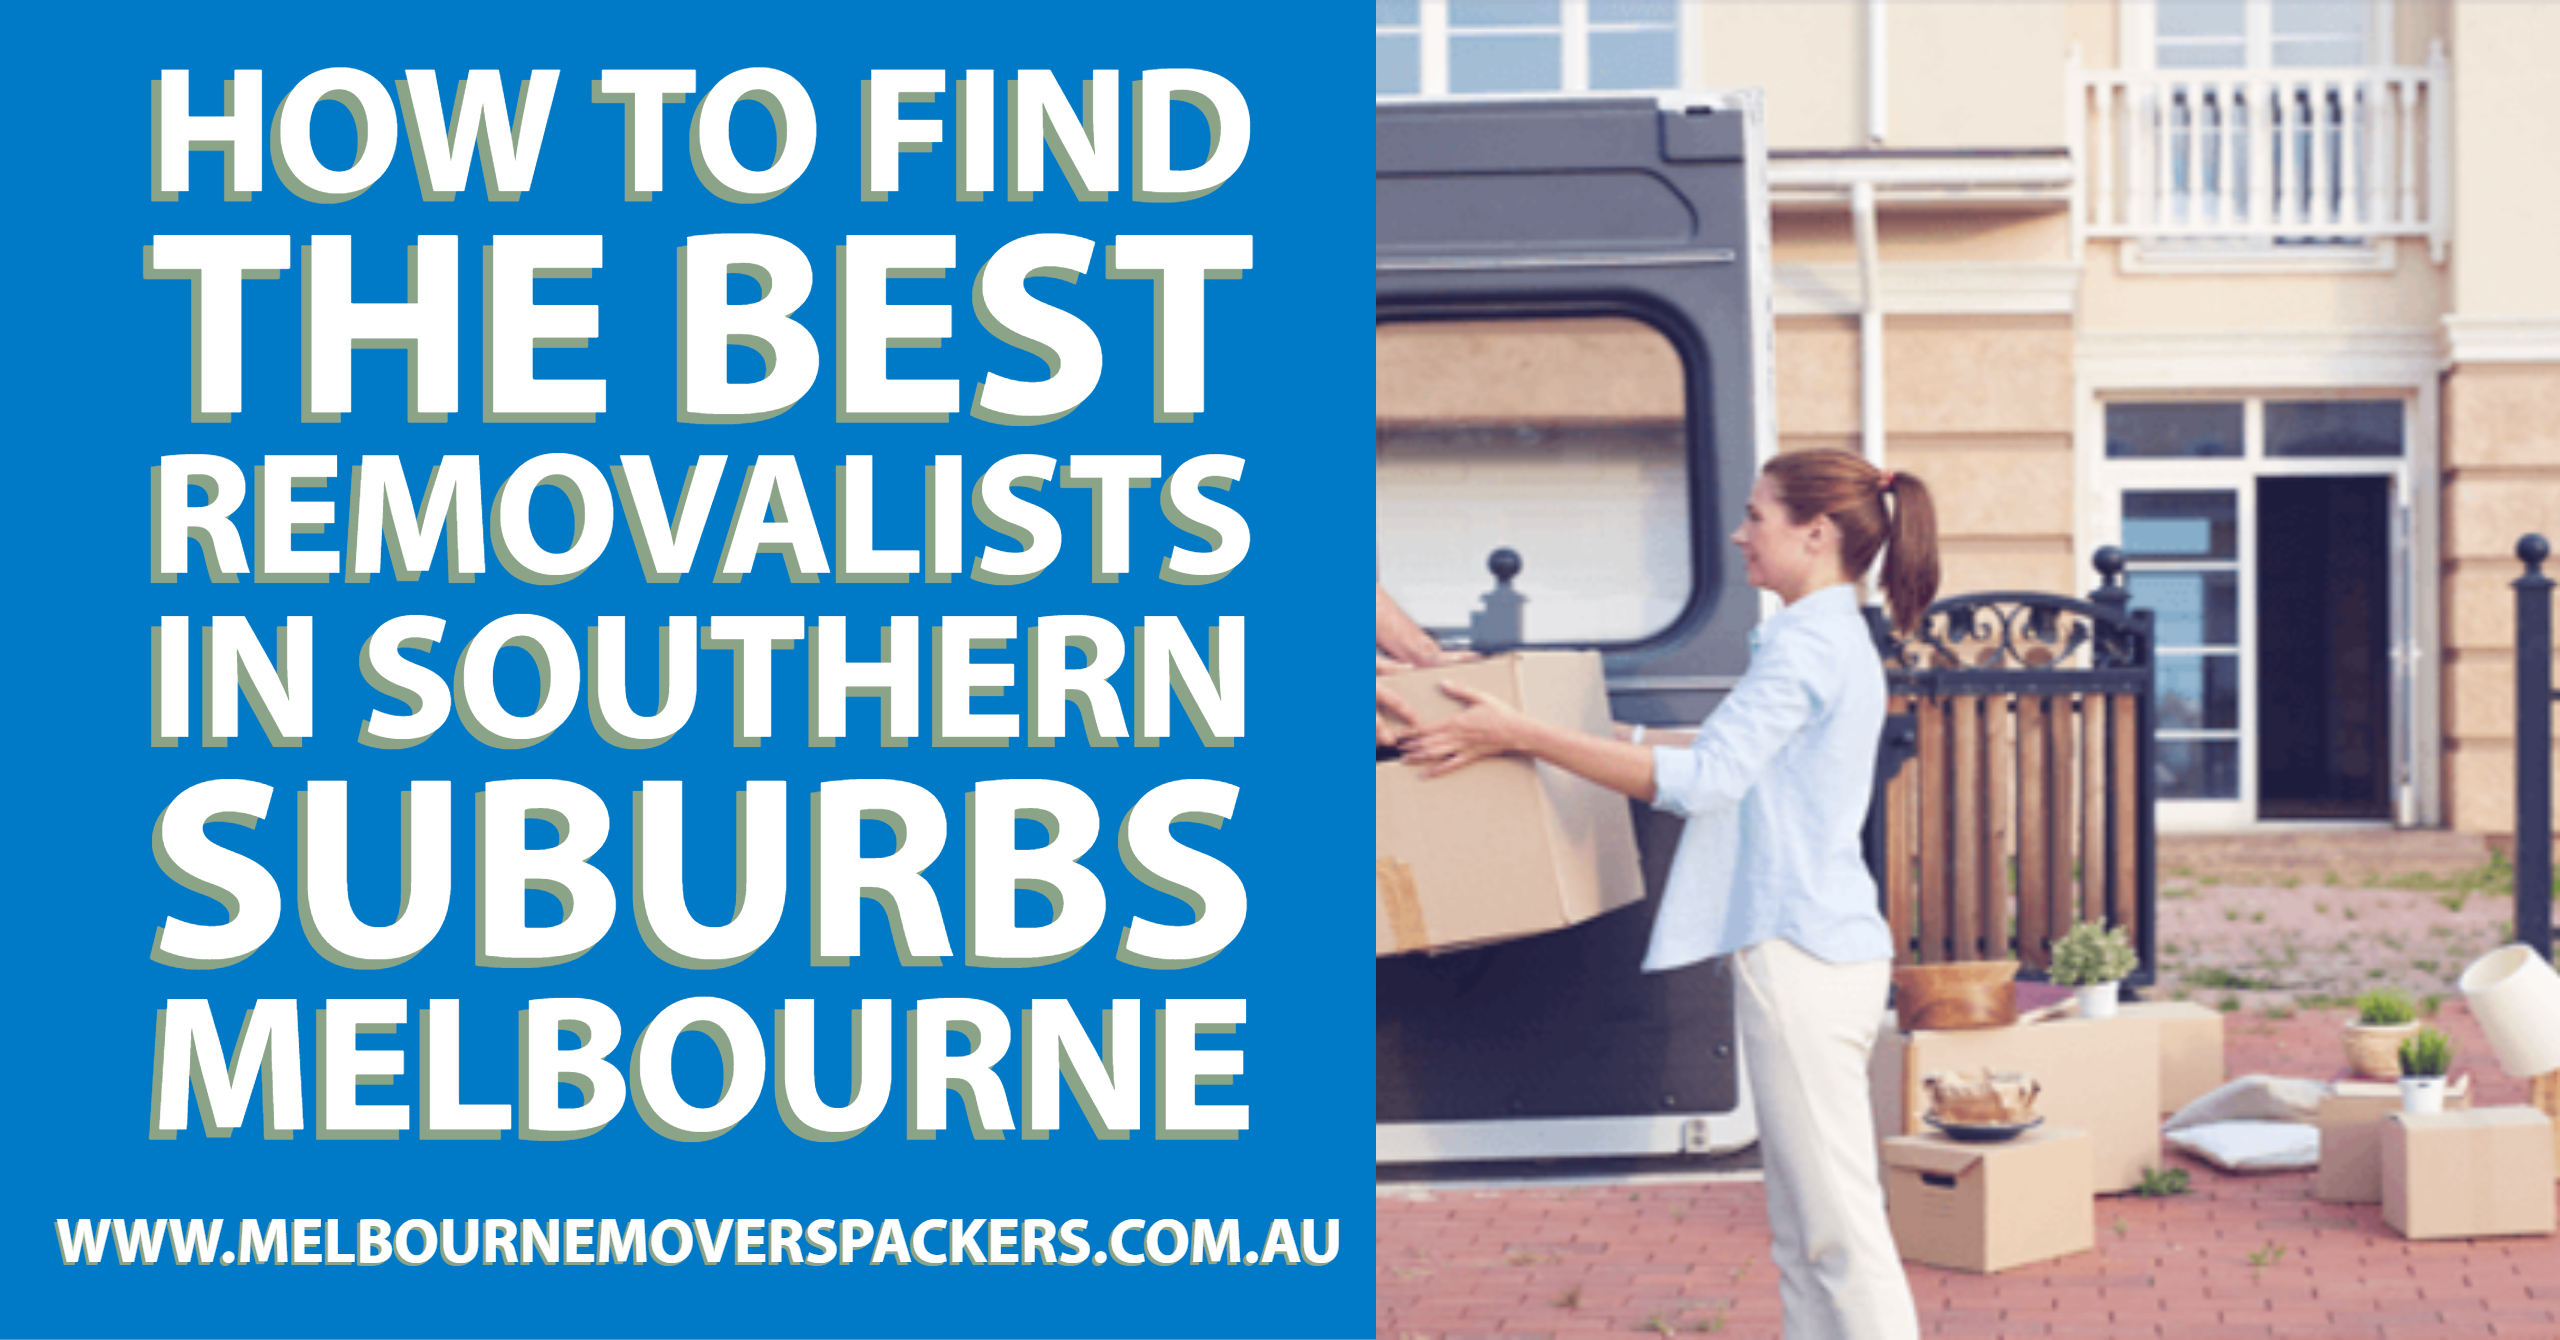 How To Find The Best Removalists In Southern Suburbs Melbourne